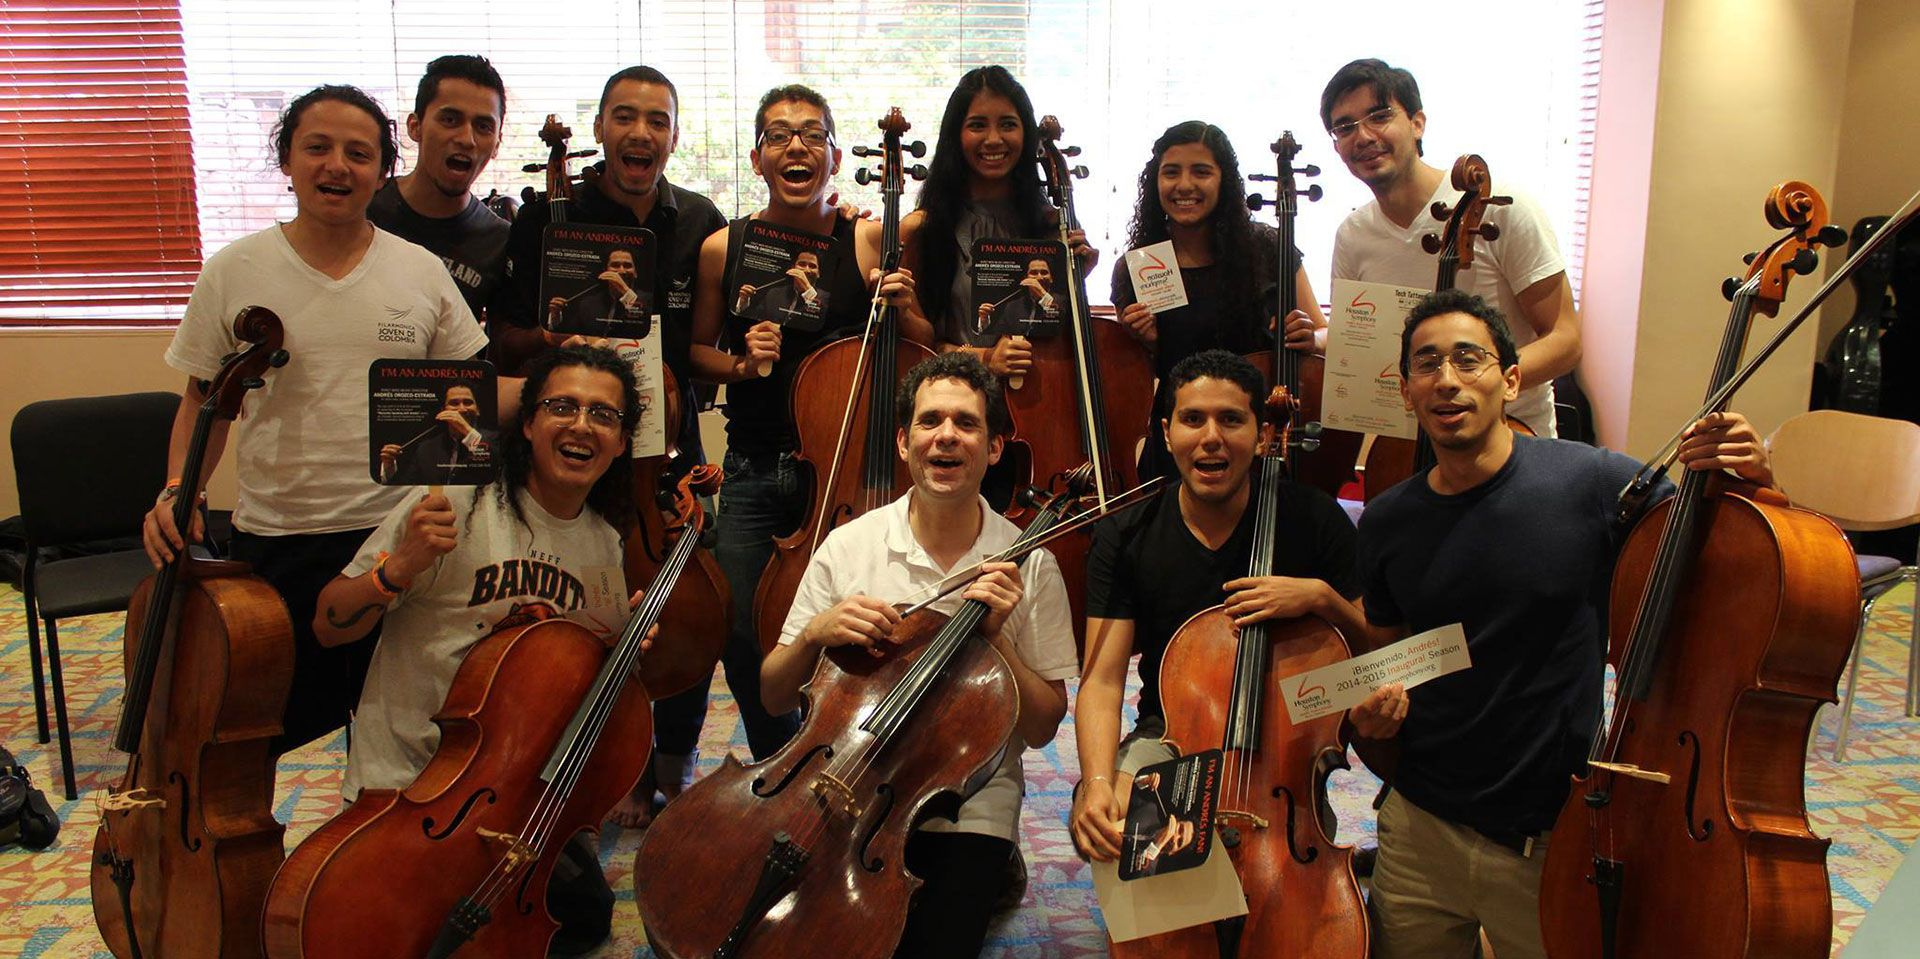 Cellists with HSO Gear